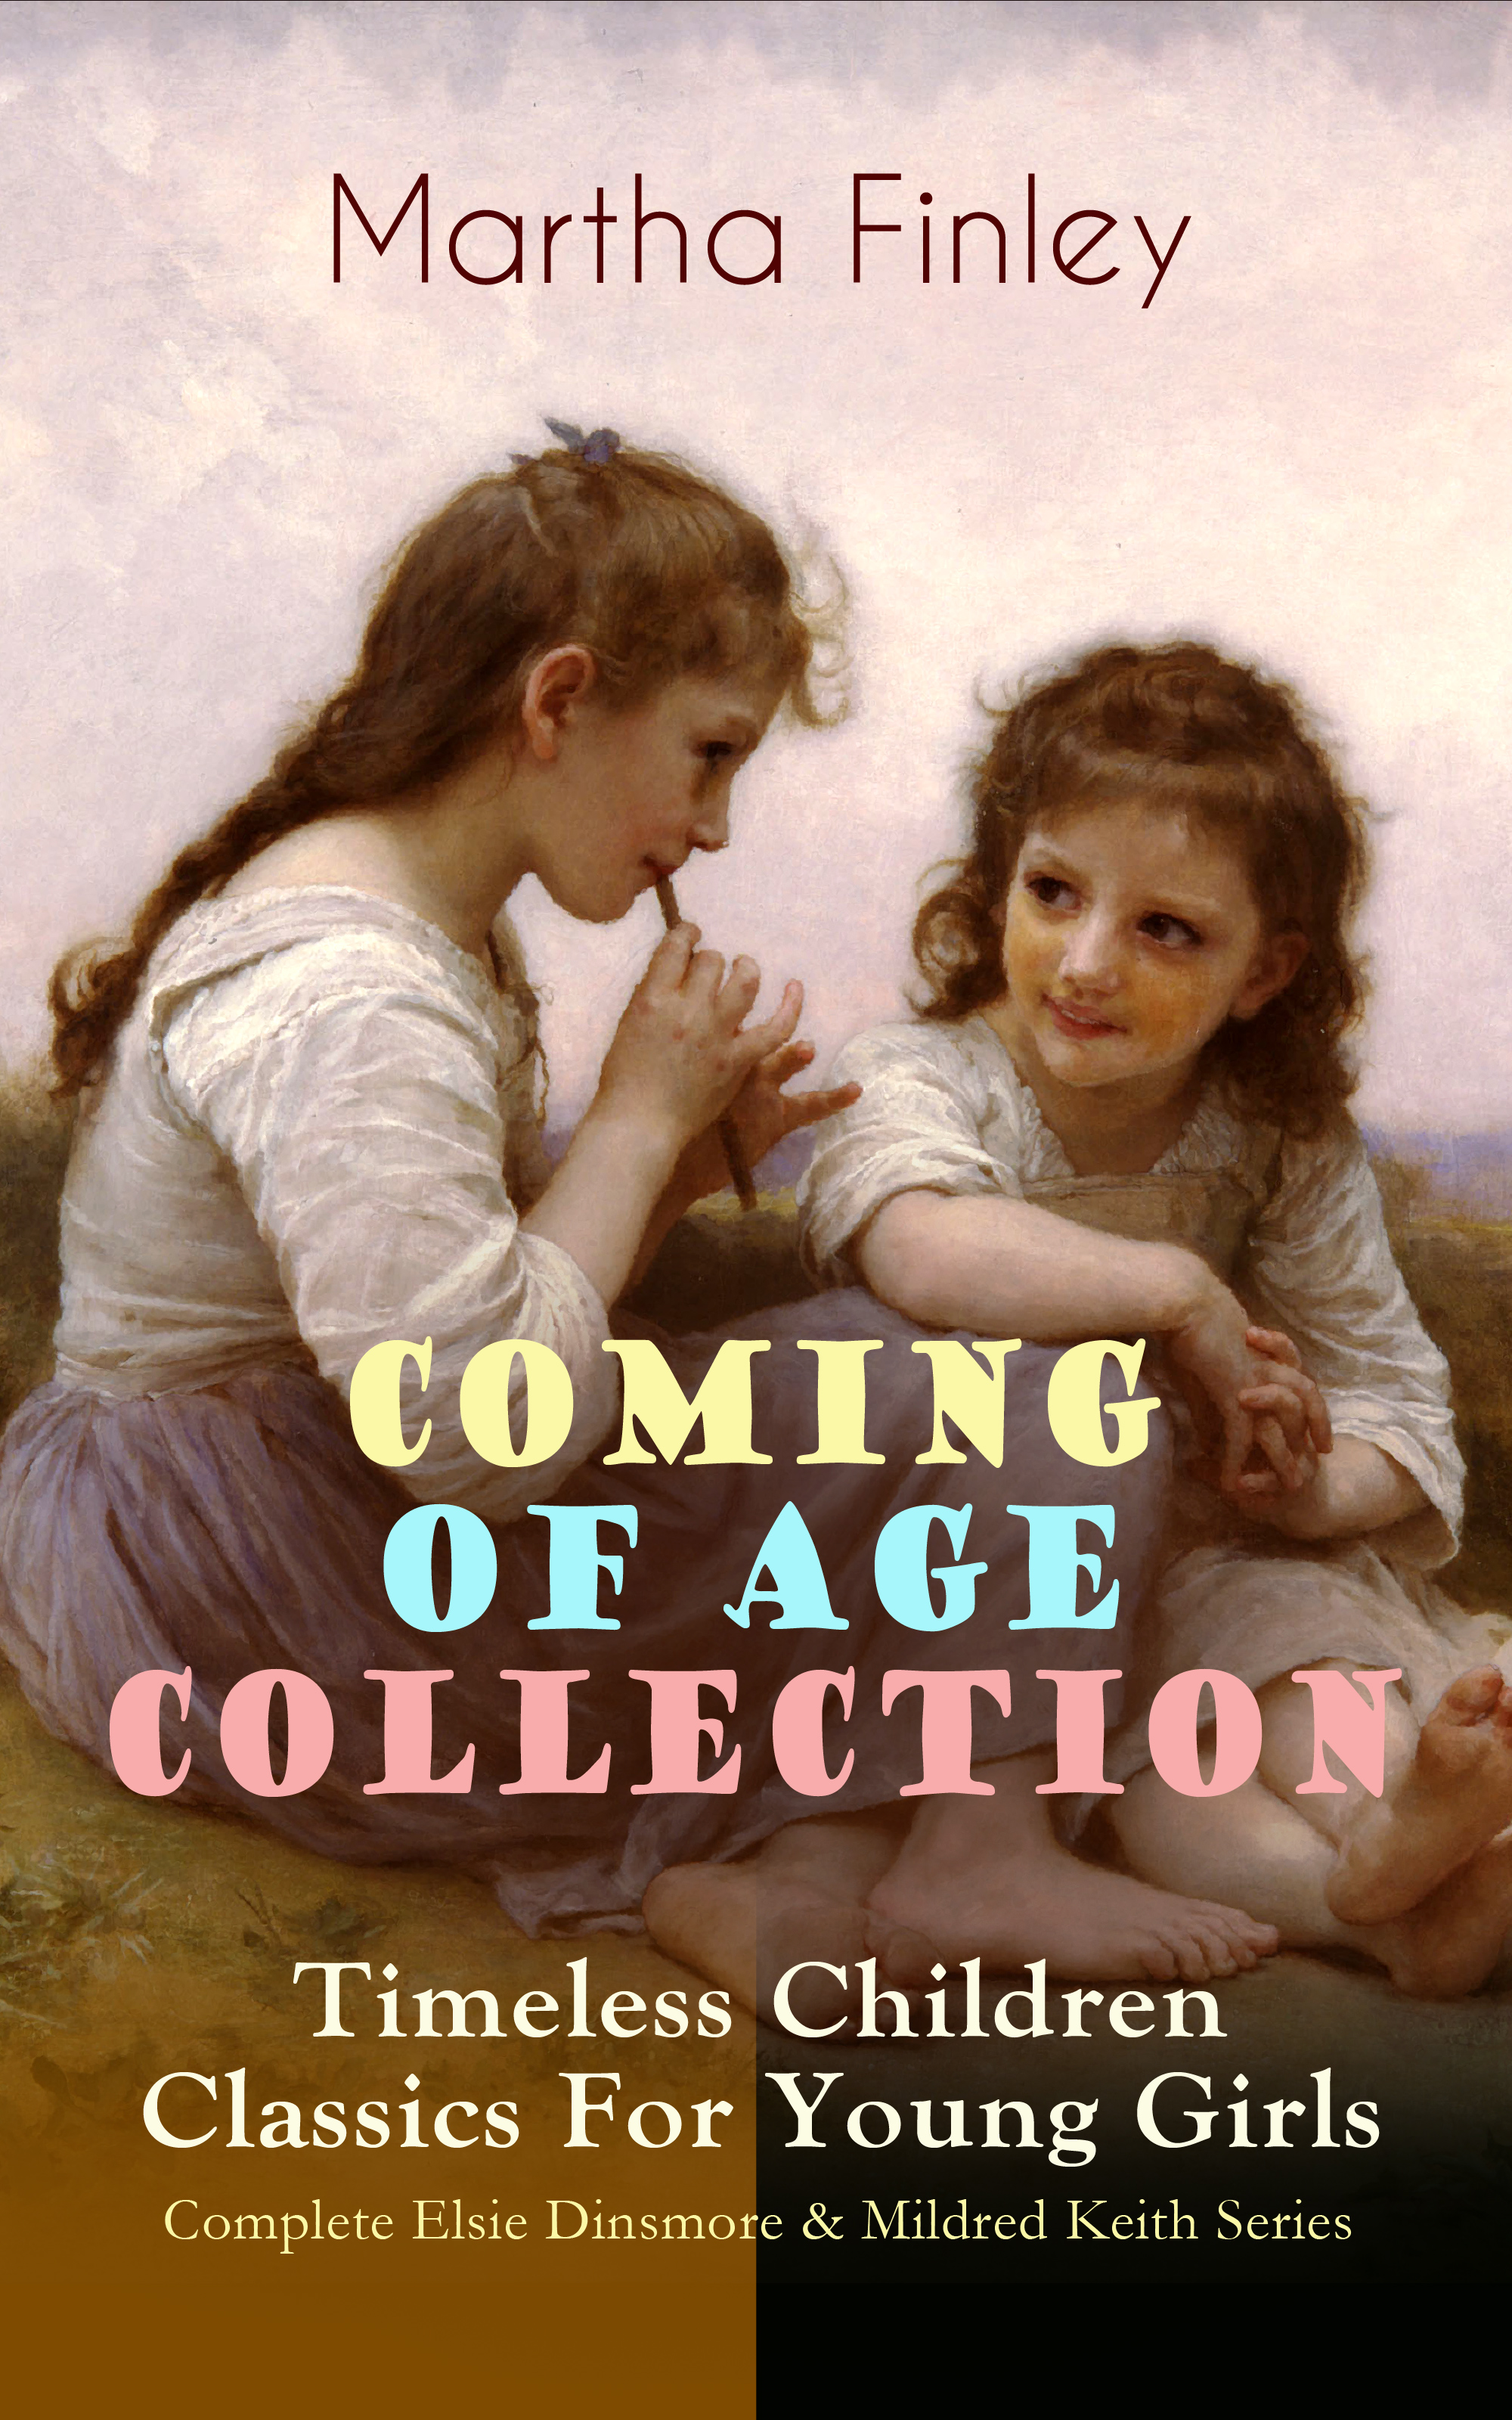 Finley Martha COMING OF AGE COLLECTION – Timeless Children Classics For Young Girls